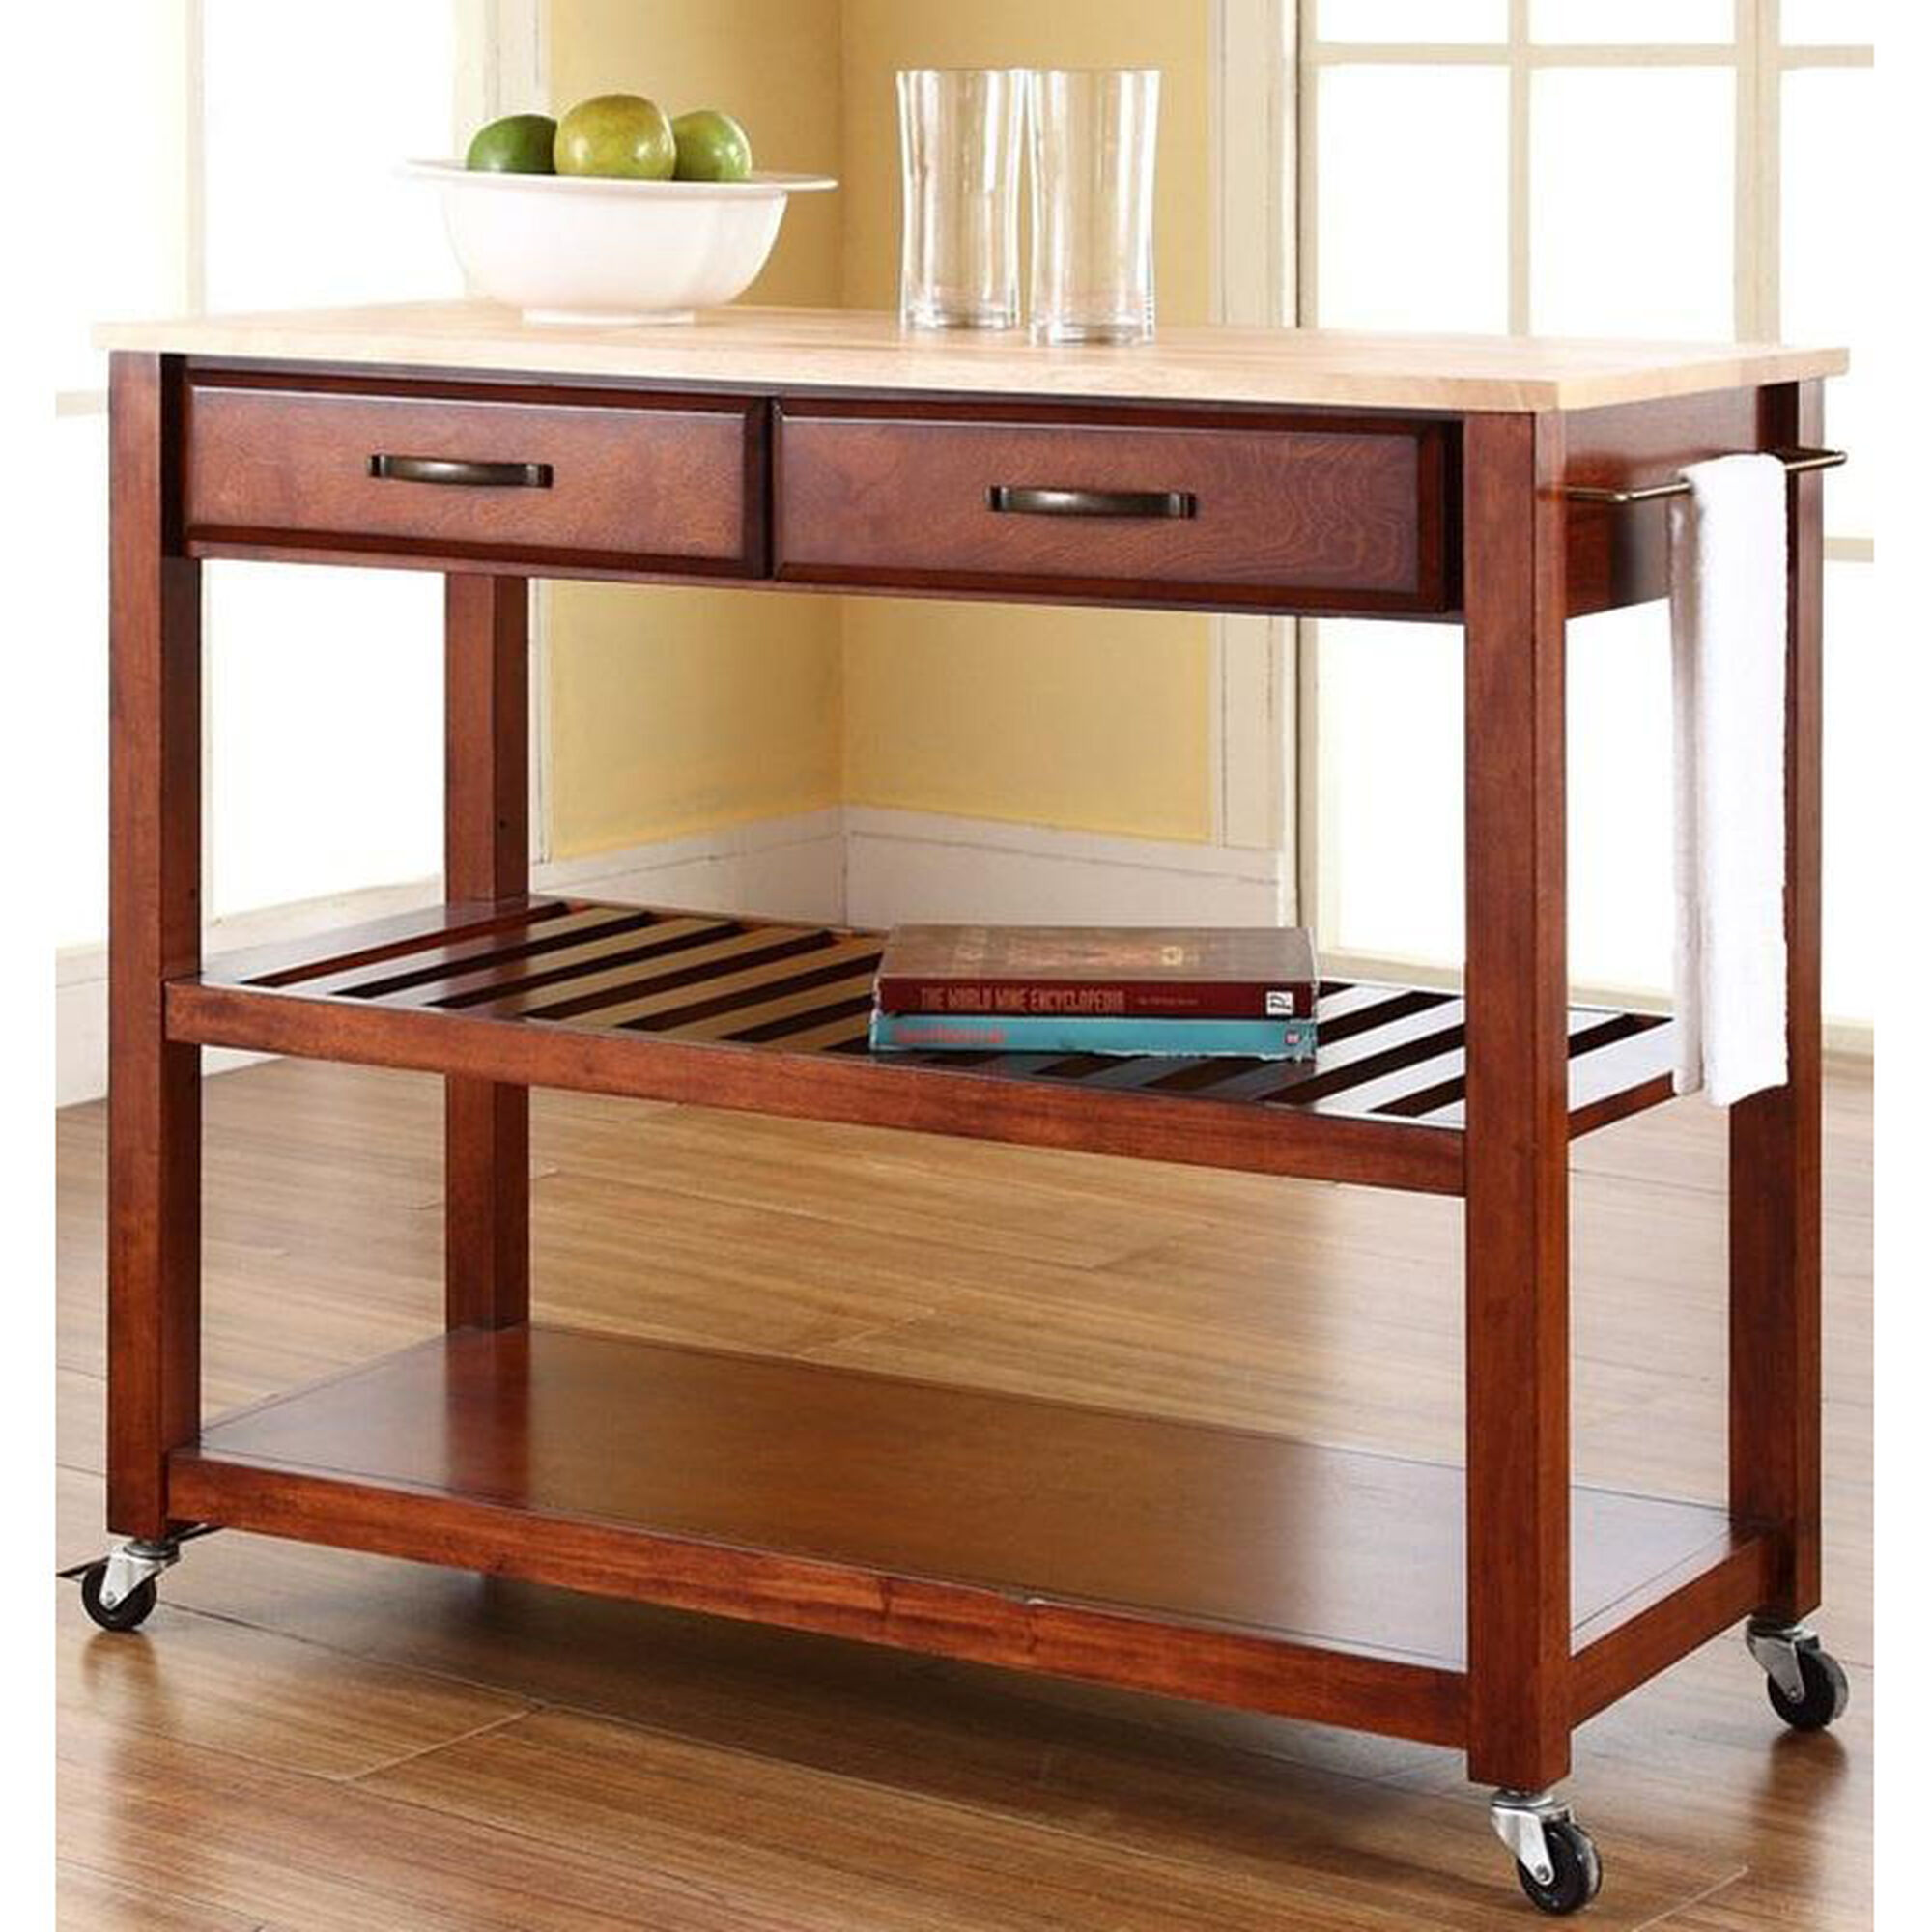 Crosley Natural Wood Top Kitchen Island Cart Maple And